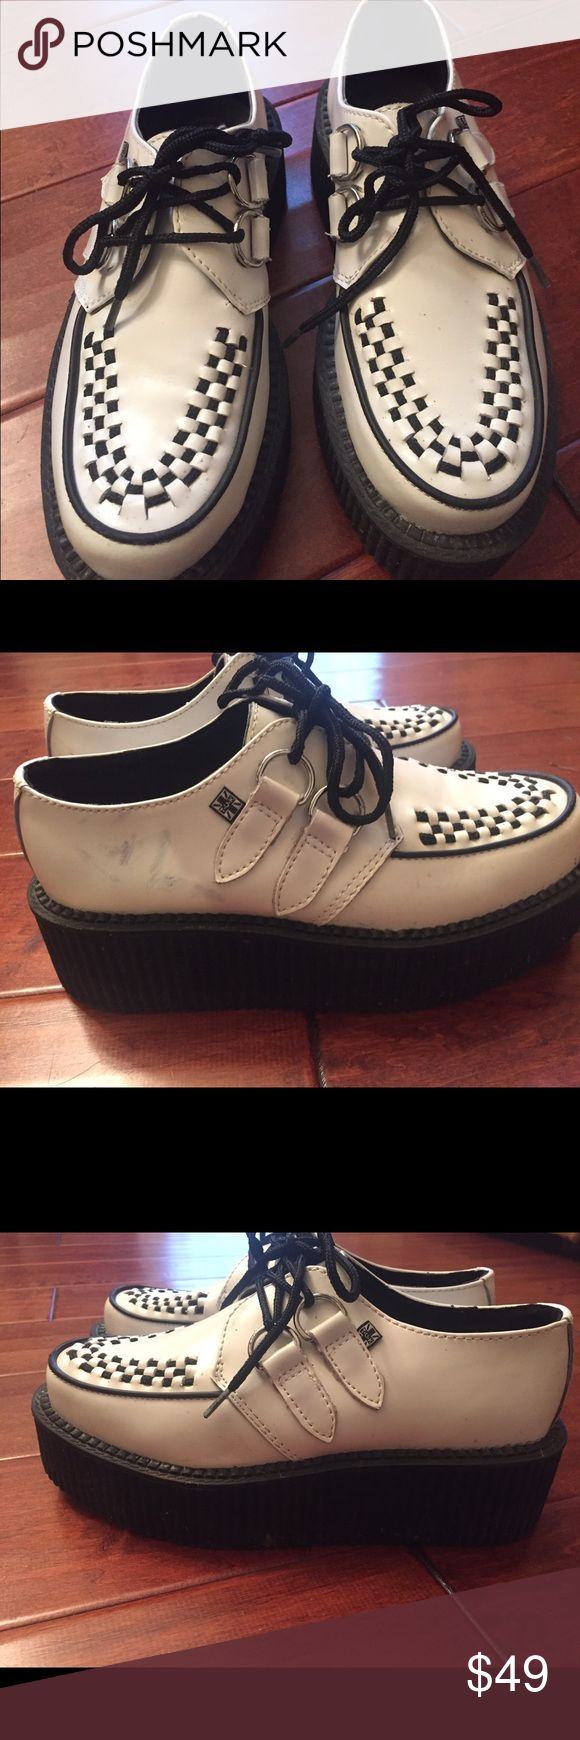 """TUK Creepers mod ska punk W 6 These Creepers, a classic mod ska punk staple since the 70's/80's. Great shape, other than a faint marking on the side of one shoe. The shoes are about 2-3"""" high. Heavy rubber sole. TUK Shoes Sneakers"""